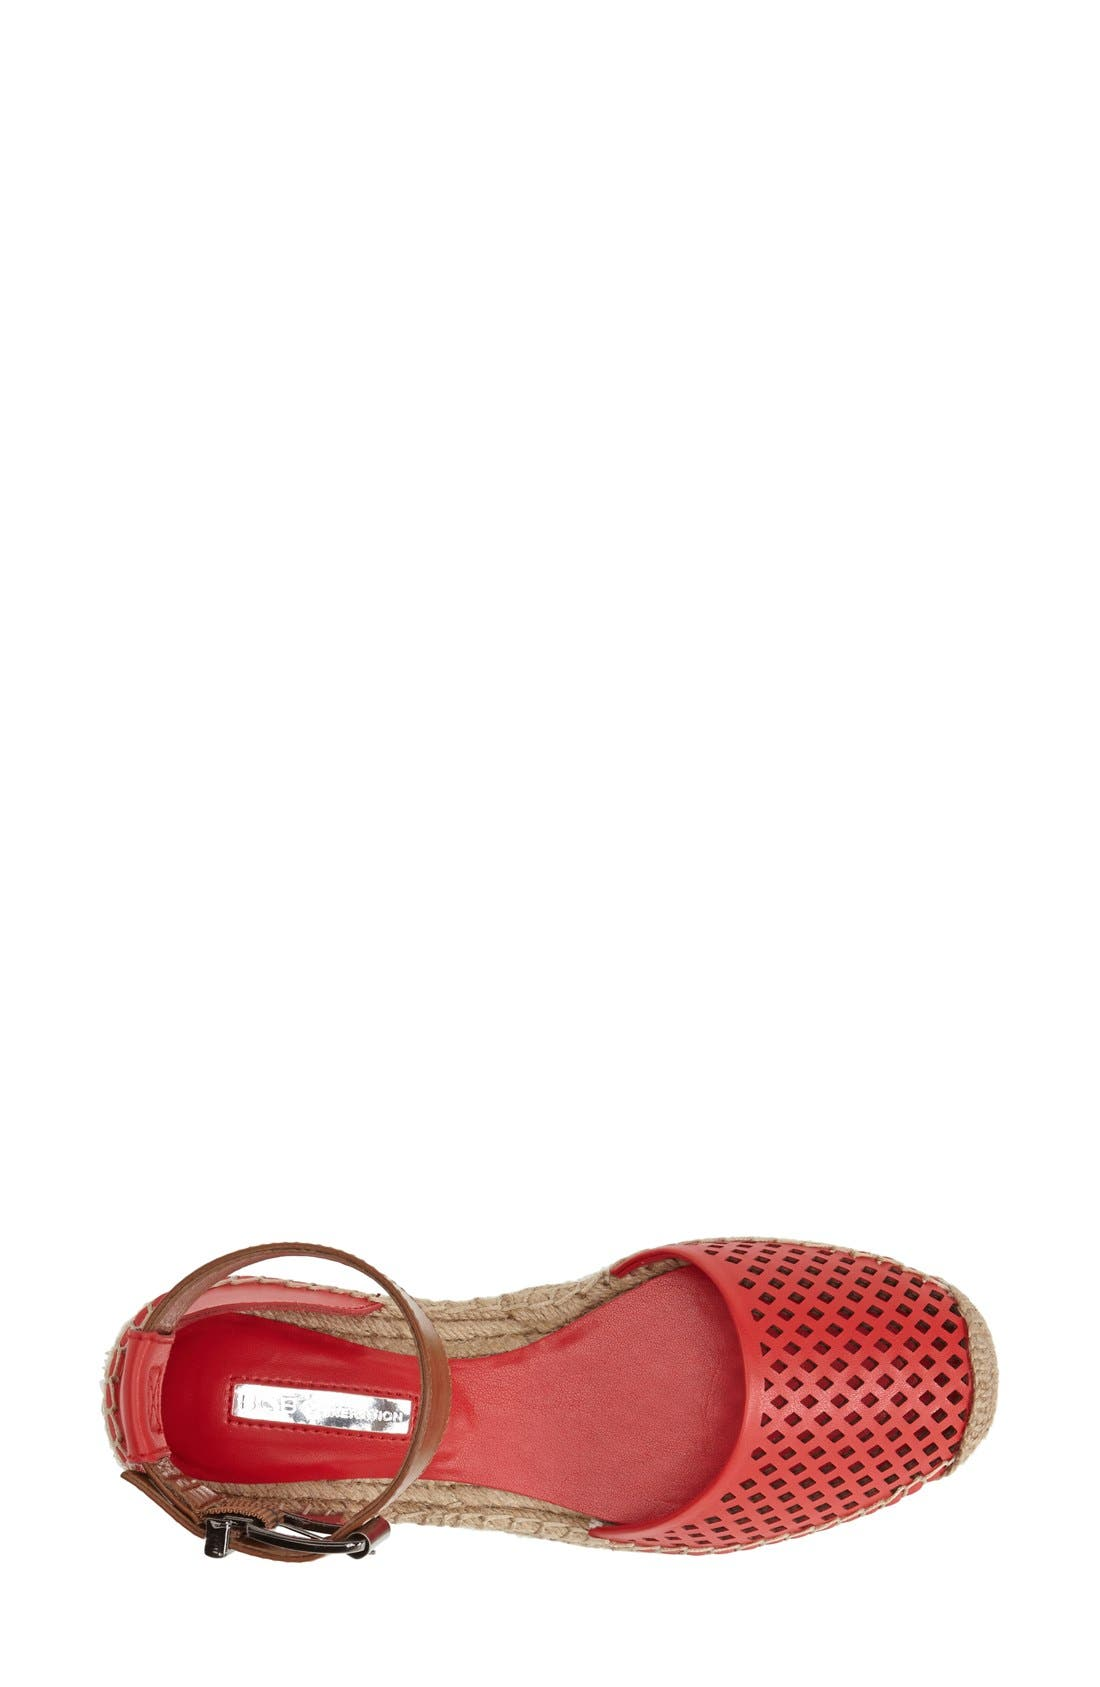 'Felicity 2' Ankle Strap Espadrille Flat,                             Alternate thumbnail 3, color,                             Passion/ Toffee